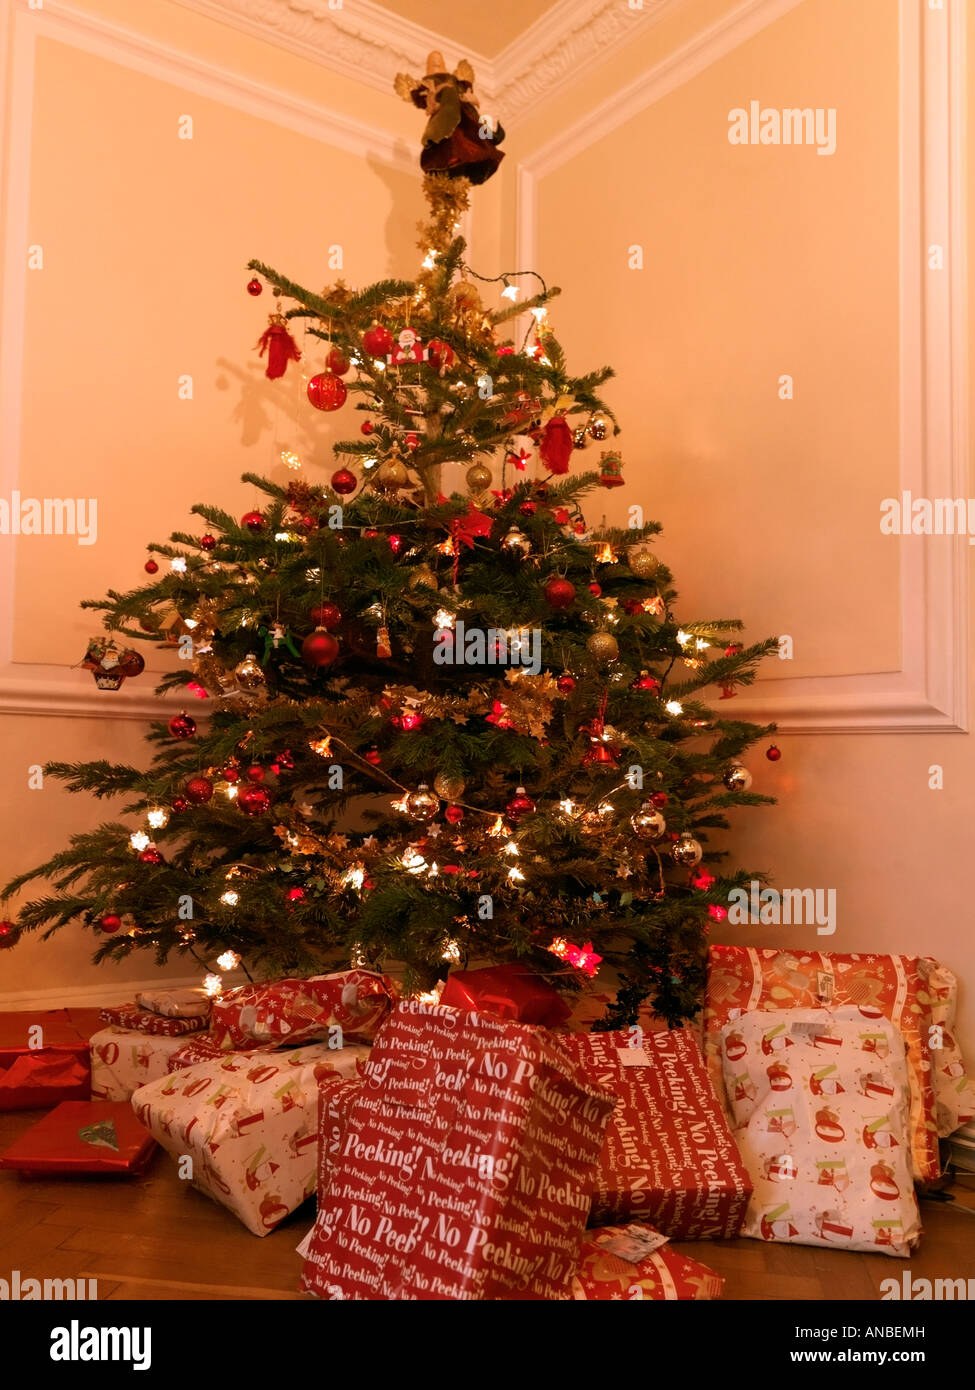 Real christmas trees with presents - Christmas Tree With Presents And Angel On Top In Lounge